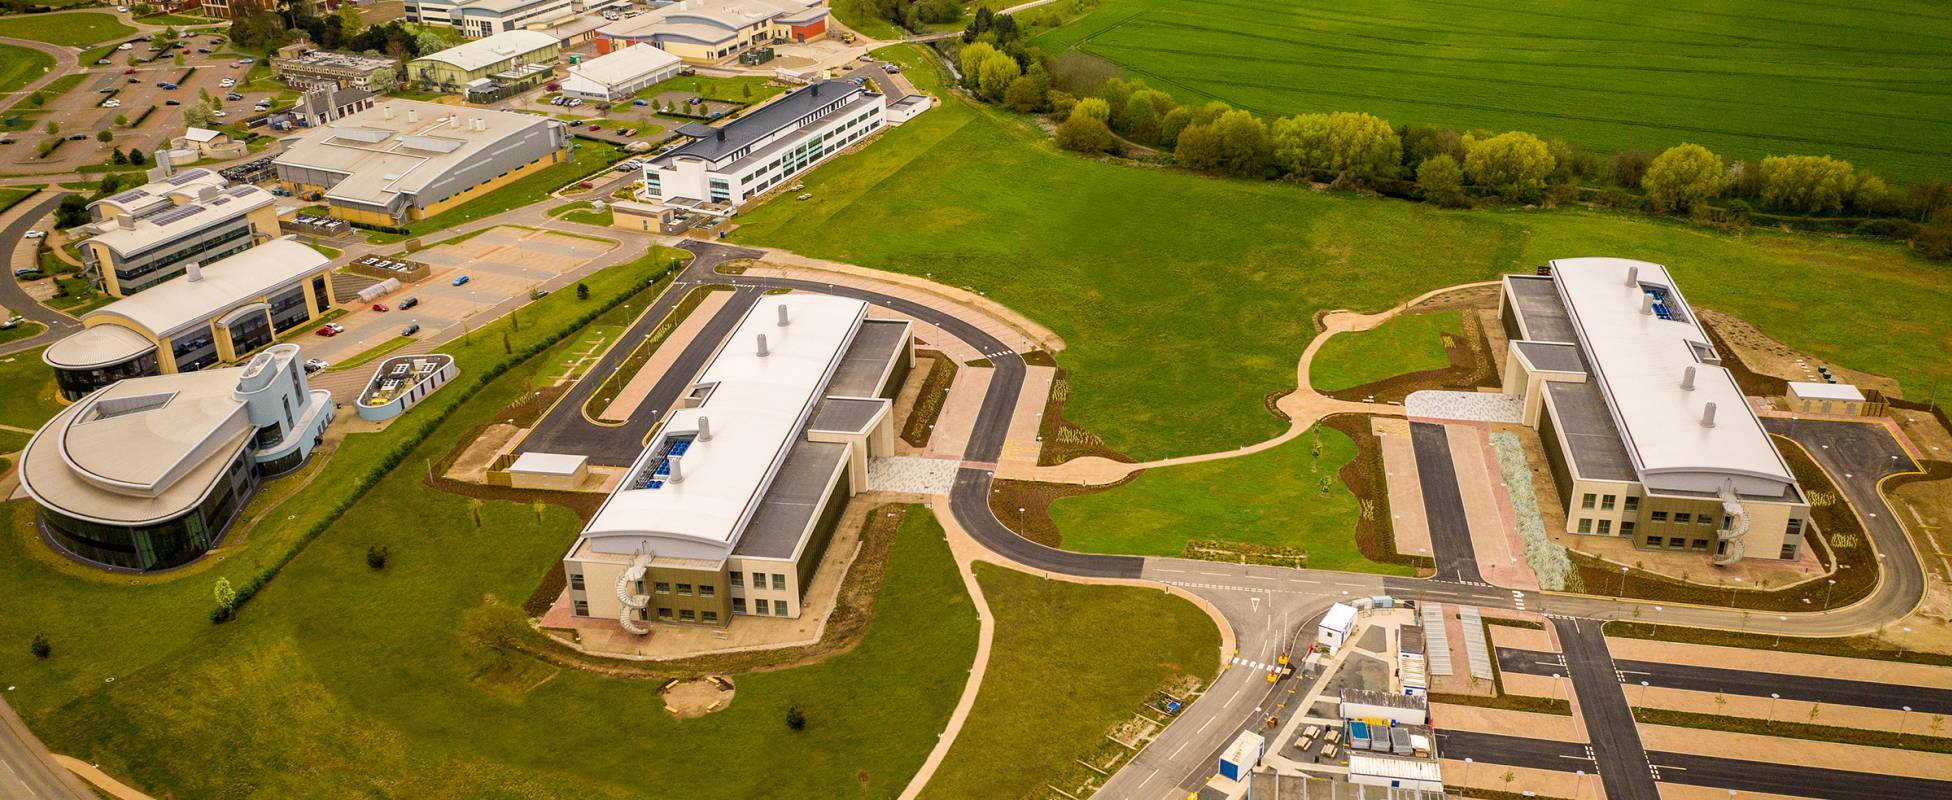 biomed at babraham research campus united kingdom biomed realty